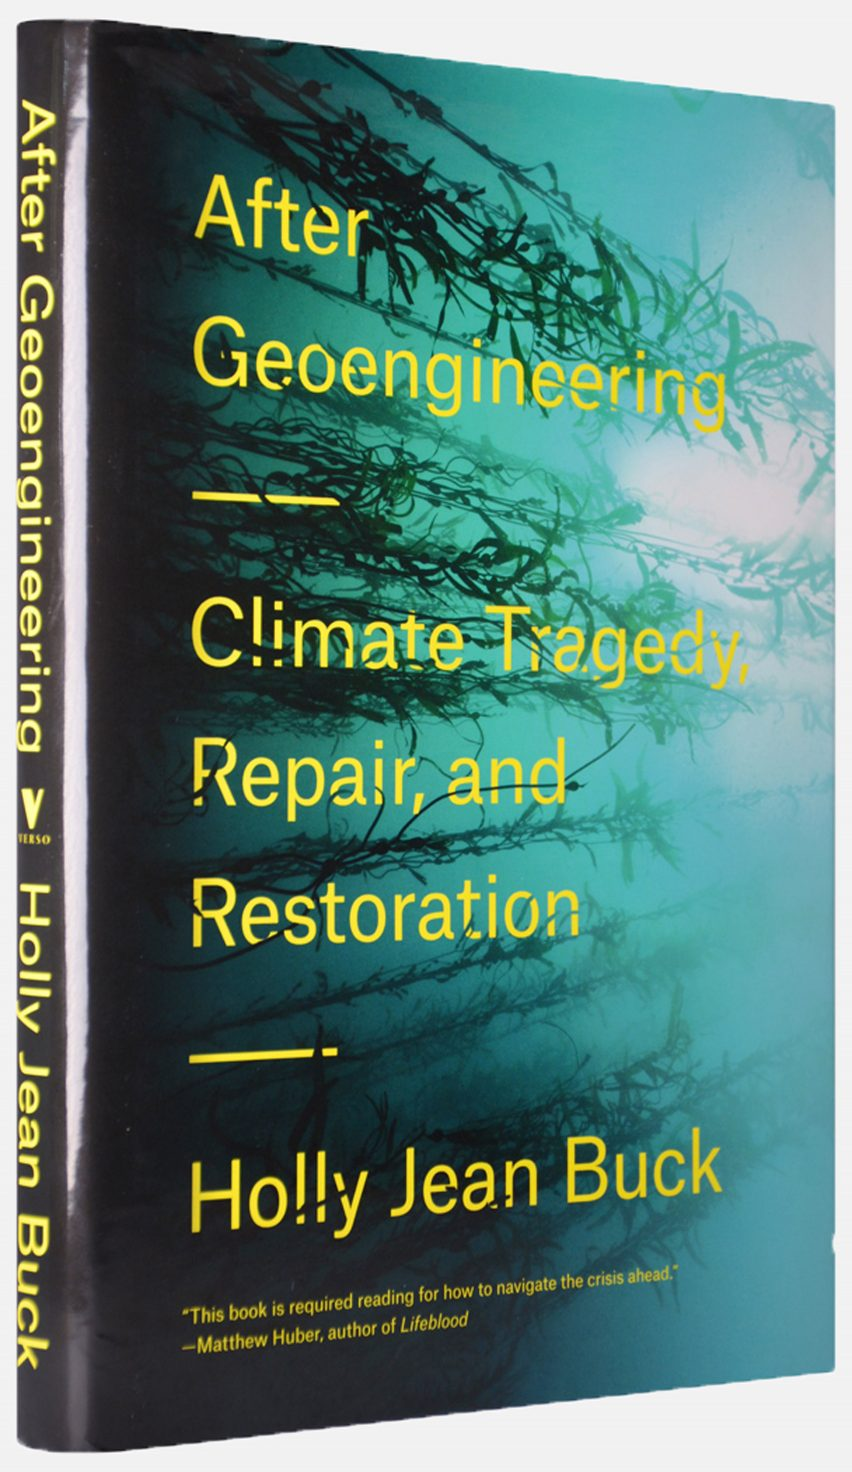 After Geoengineering Climate Tragedy, Repair, and Restoration